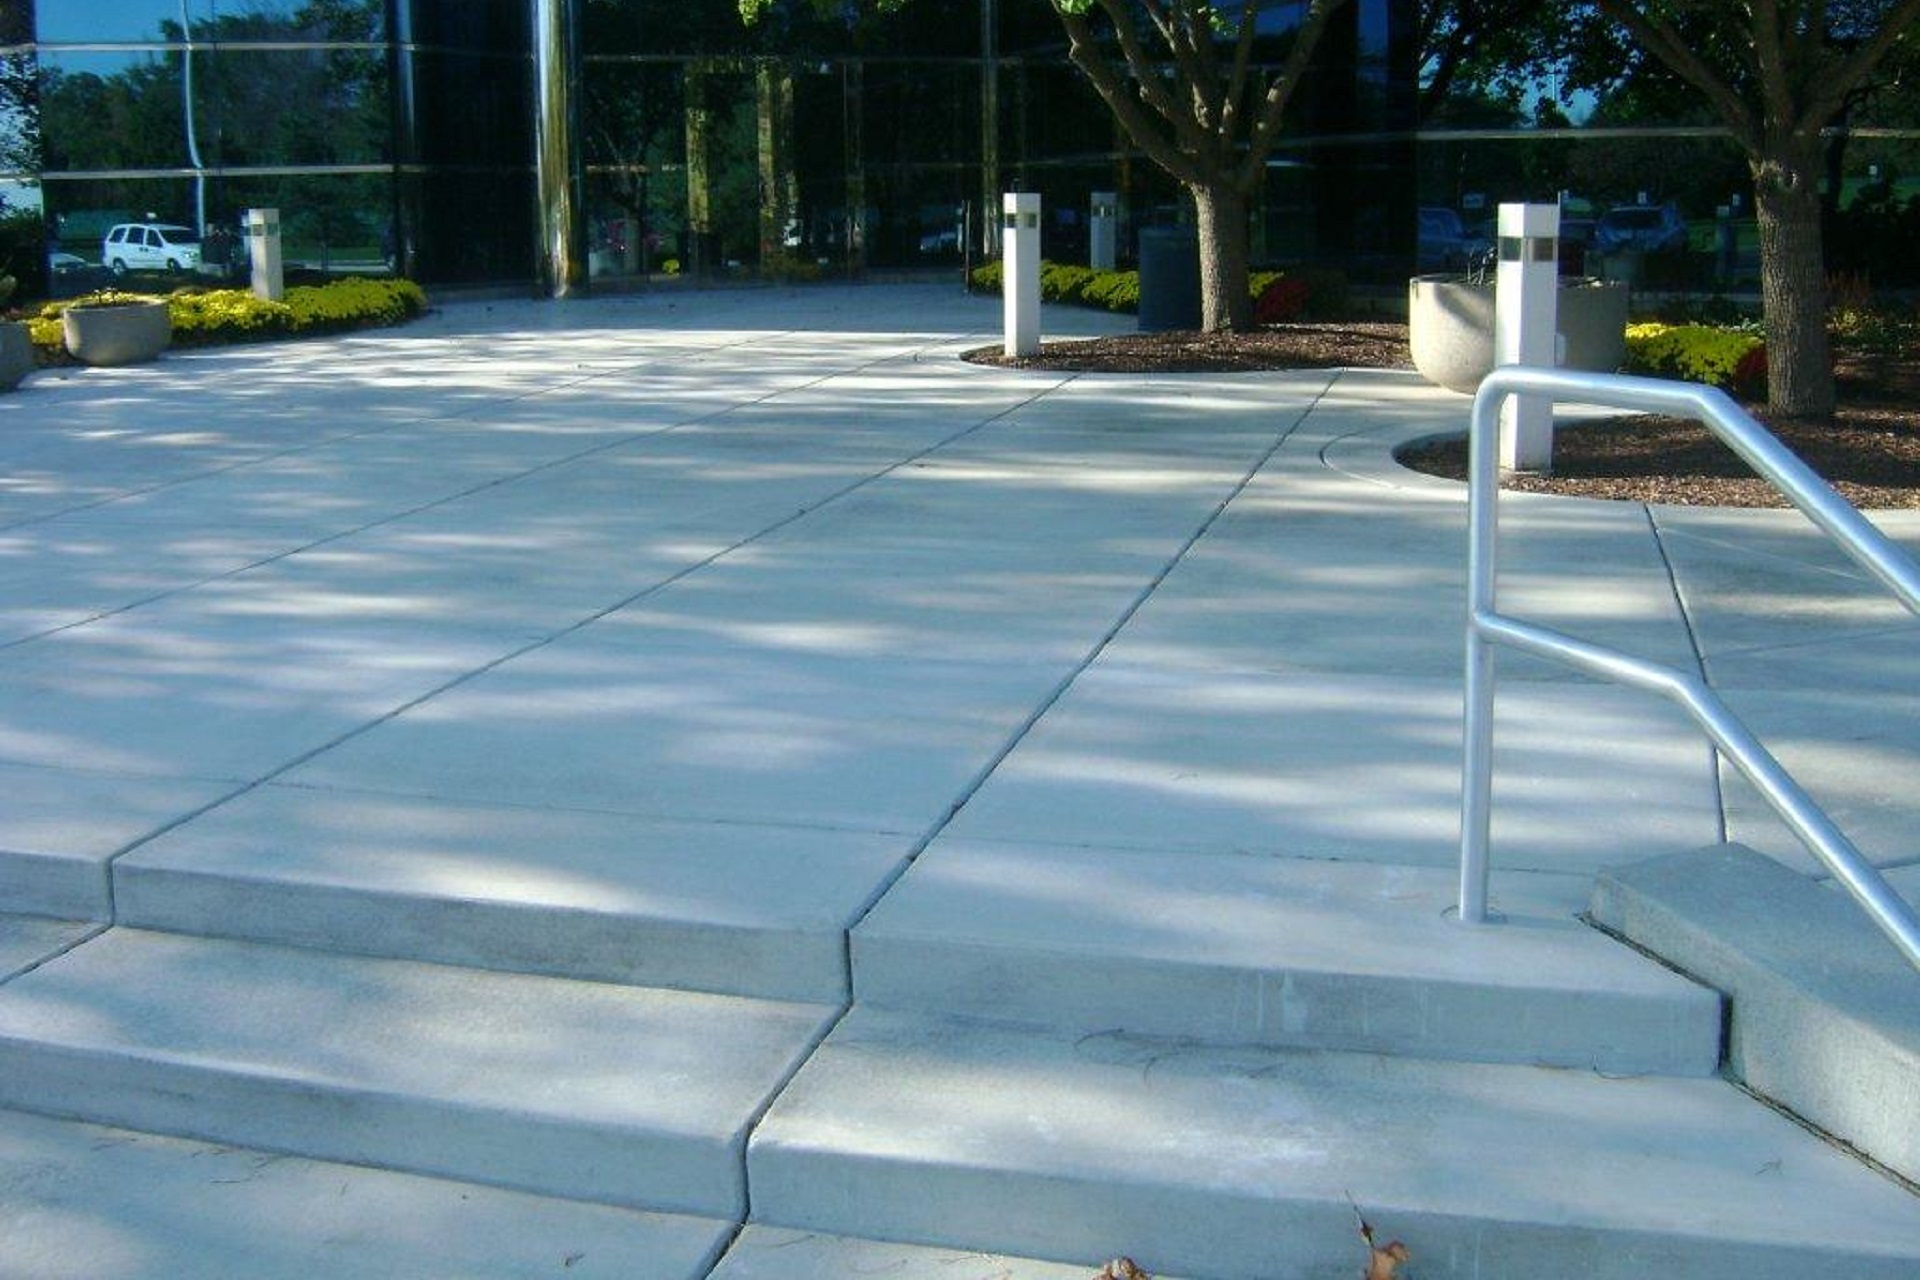 commercial Concrete Paving, Paving, Milwaukee, Concrete Contractor Wisconsin, Stamped Concrete, paving